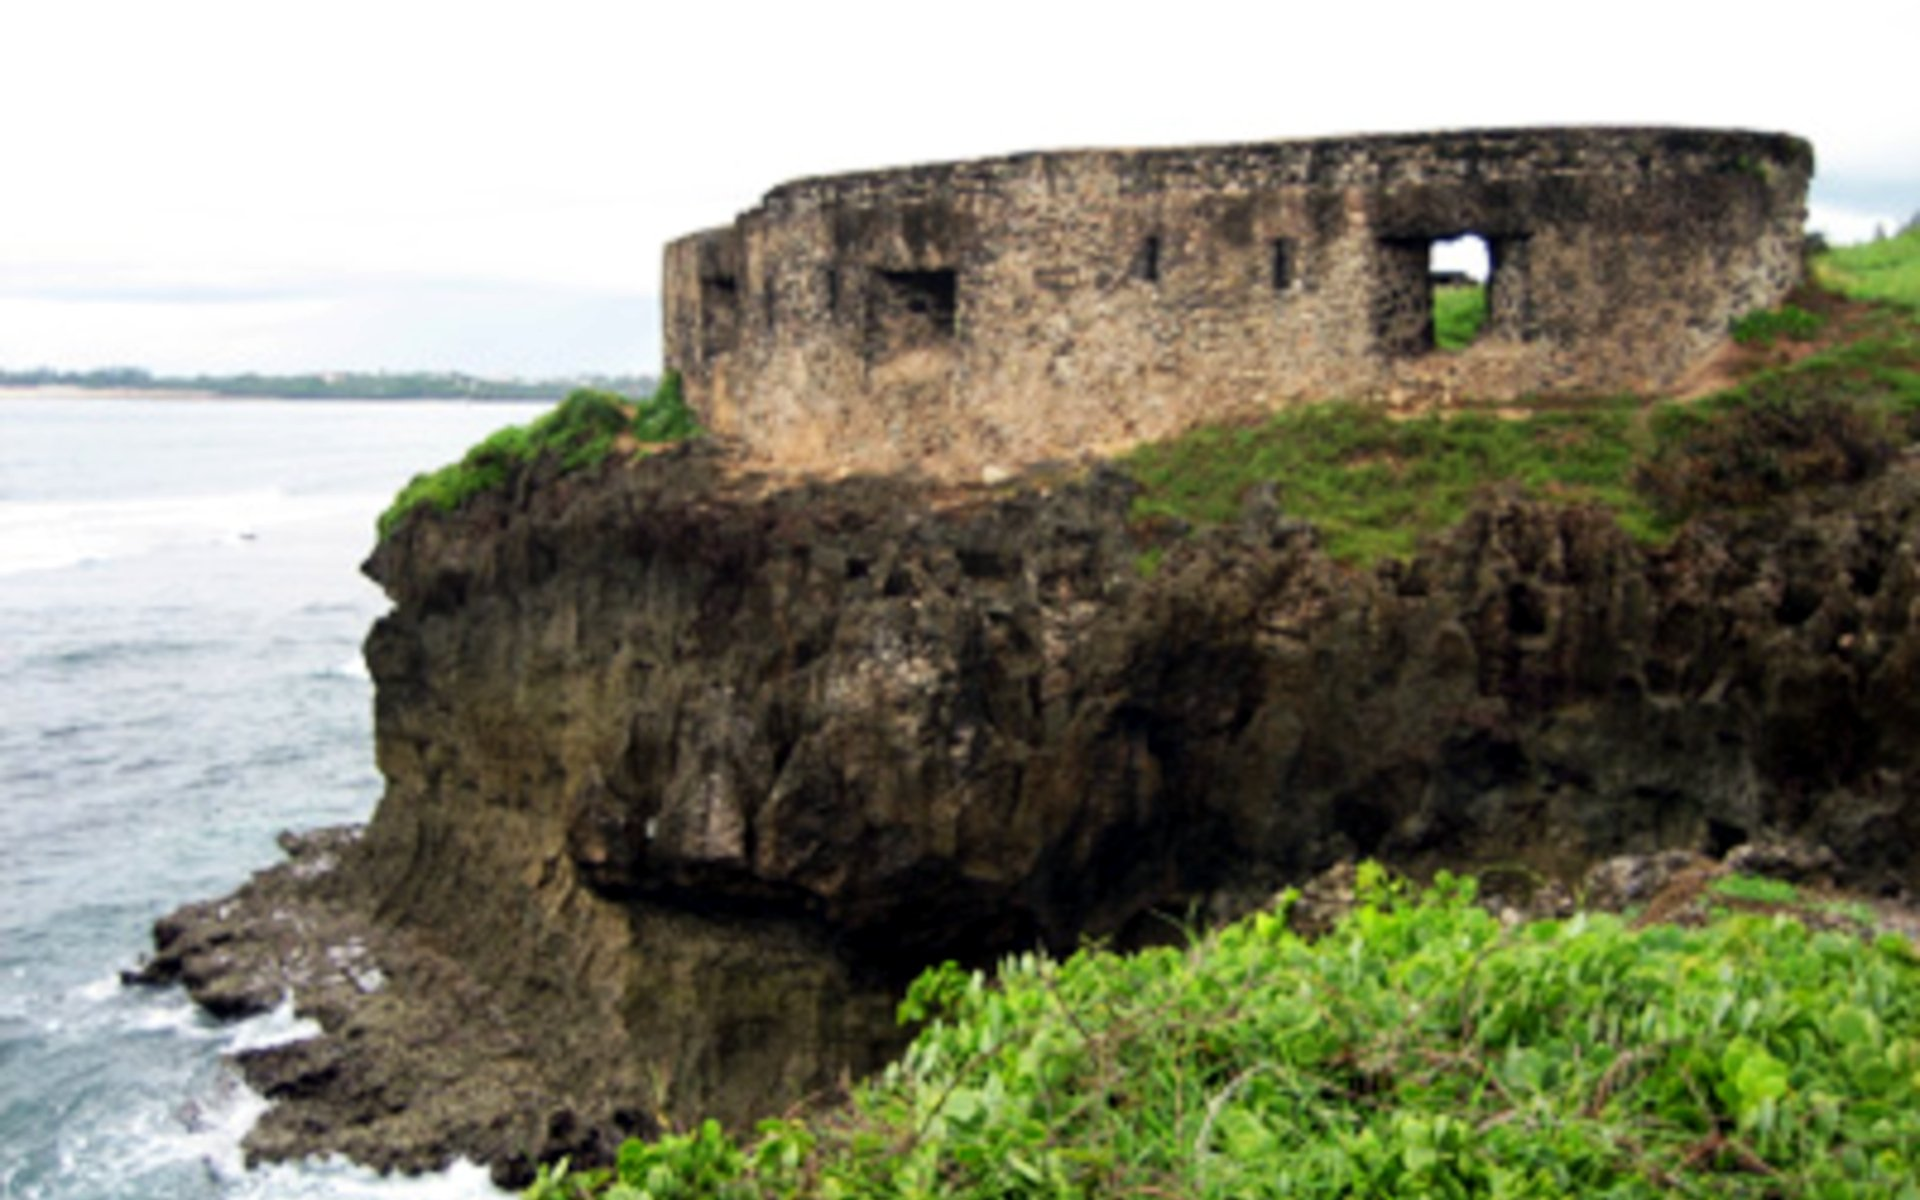 In Mombasa County, just a few metres from the Likoni Ferry along Mama Ngina Drive lies an ancient fort, or what remains of it. The St. Joseph's Fort dates further back than Fort Jesus. Some people even claim that the fort still existed before Vasco da Gama stepped into Mombasa in the 15th century.